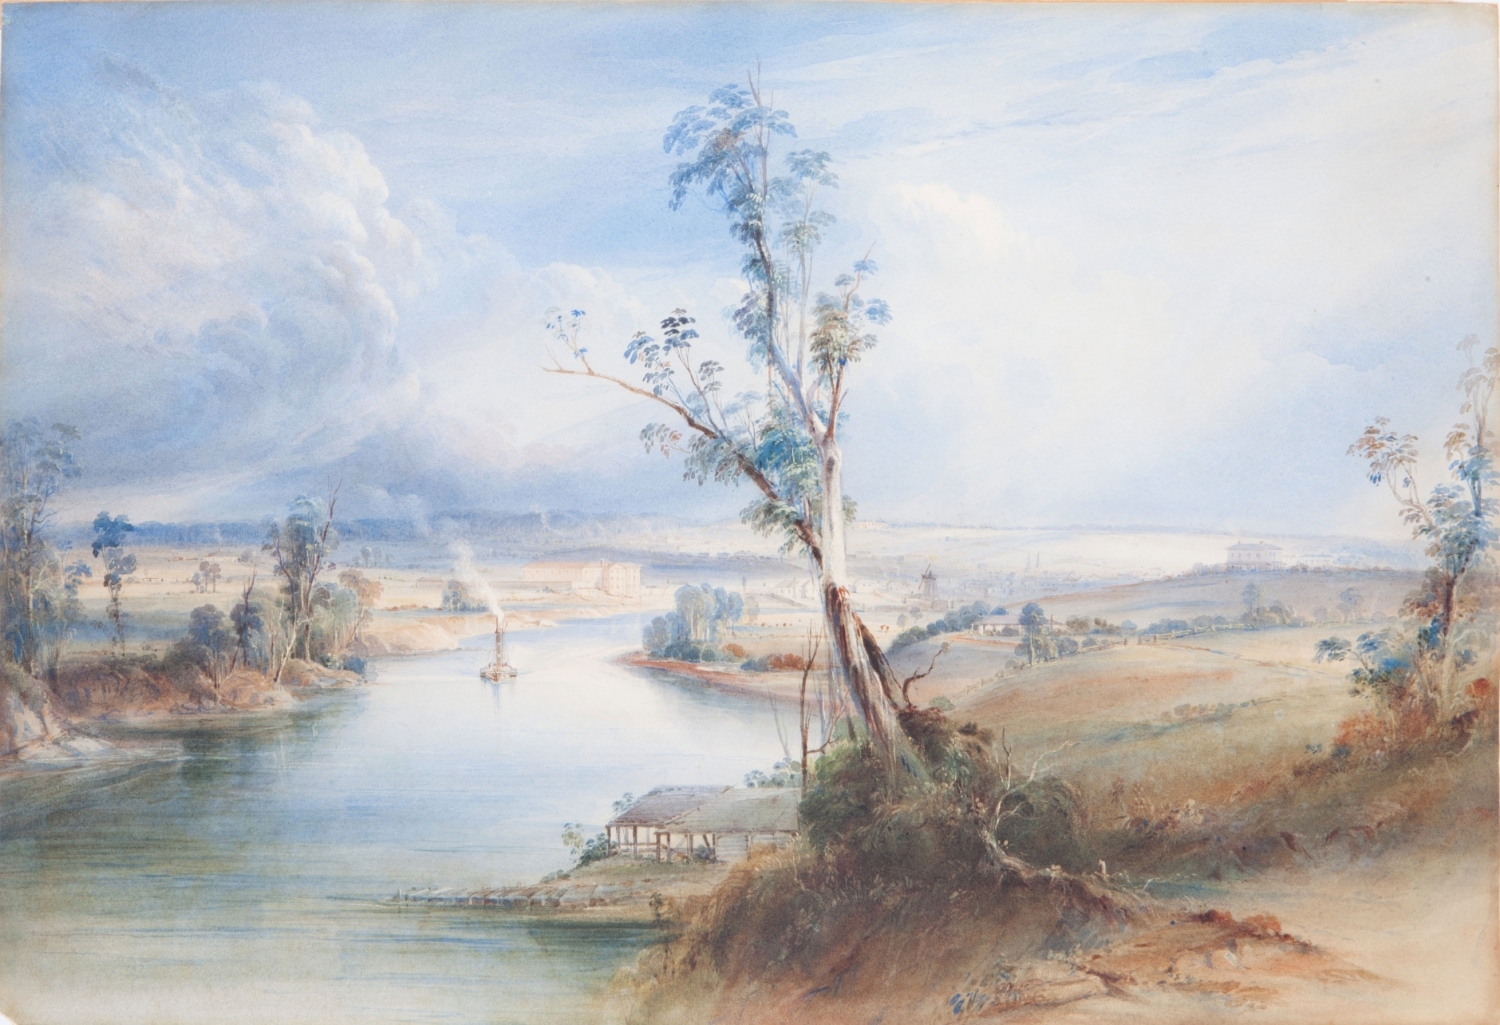 Watercolour of river bank with large tree in centre of painting.